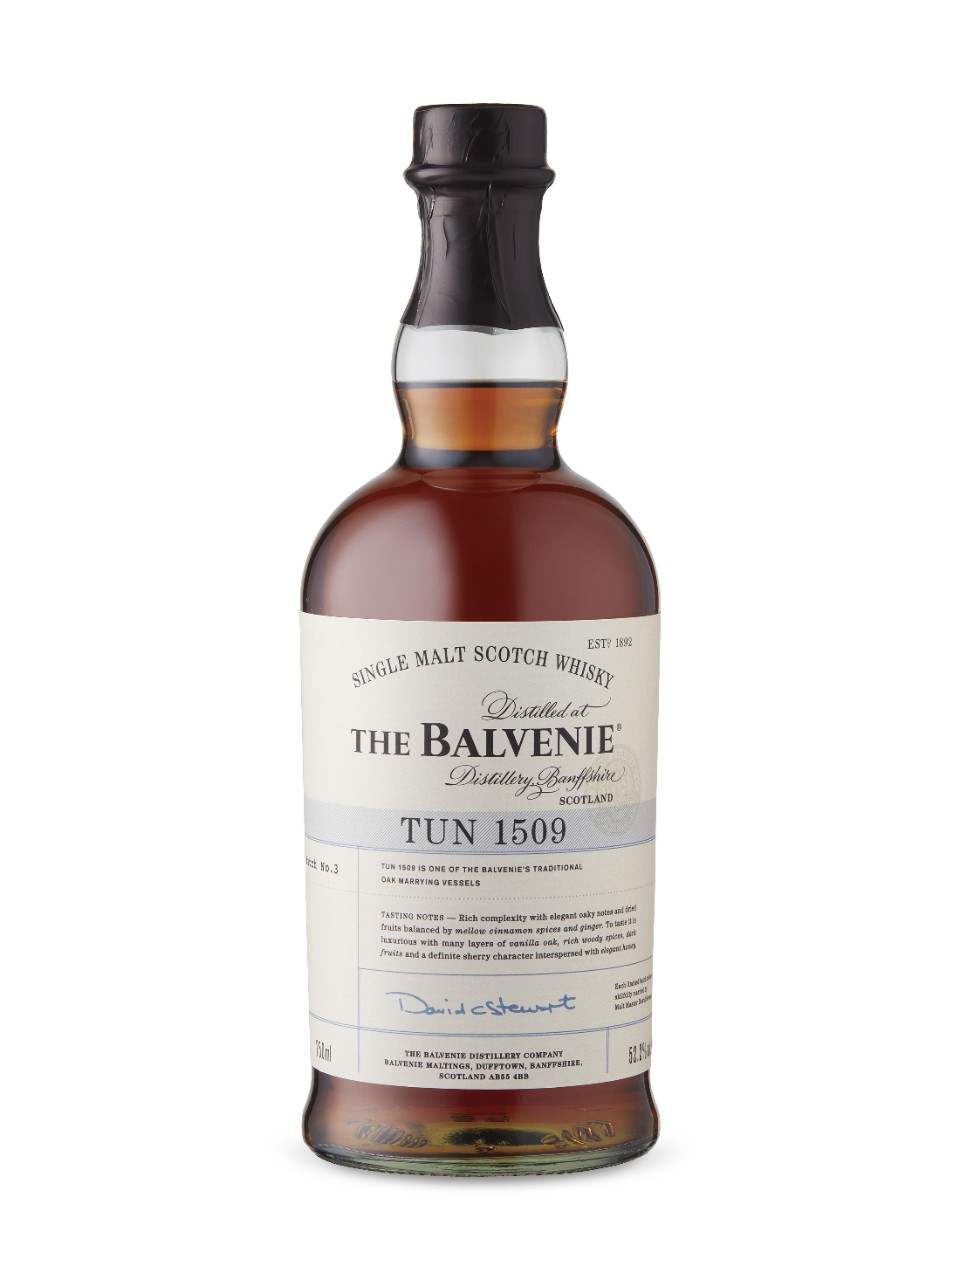 Image for The Balvenie Tun 1509 Single Malt Scotch Whisky from LCBO